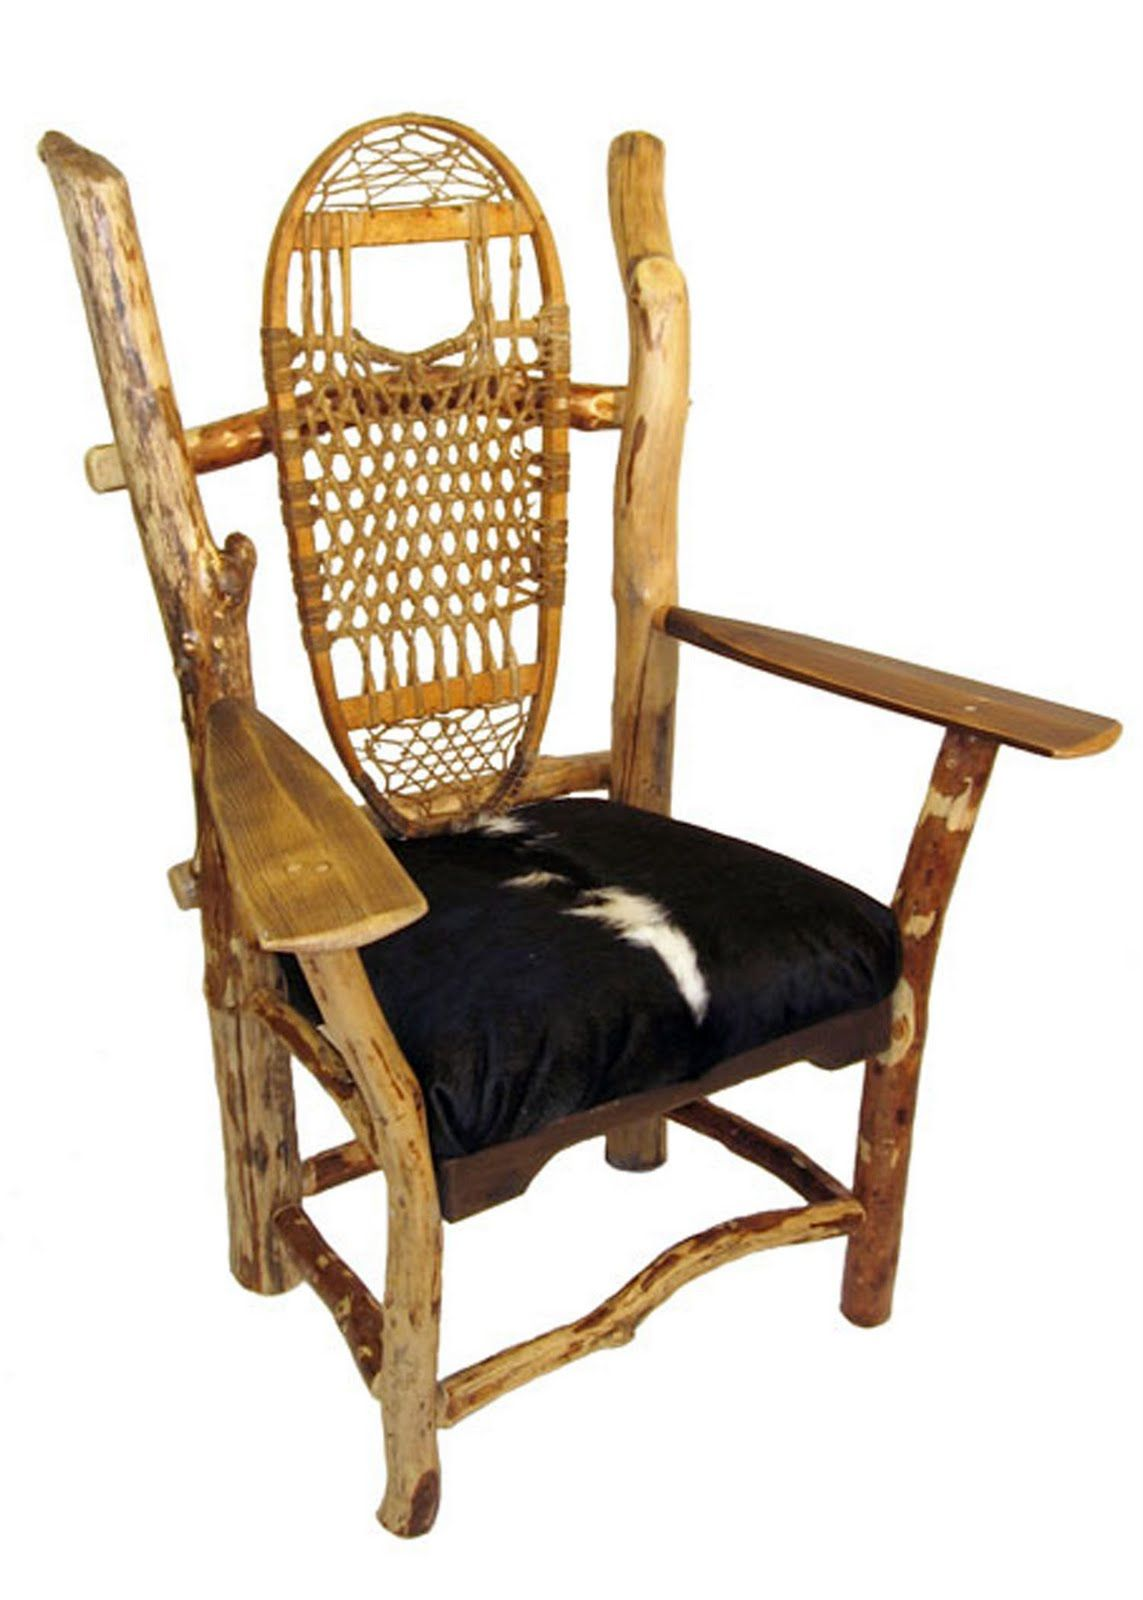 Primitive Chair With Branches, Snow Shoe And Paddles. Gonna Call It An  Assemblage.